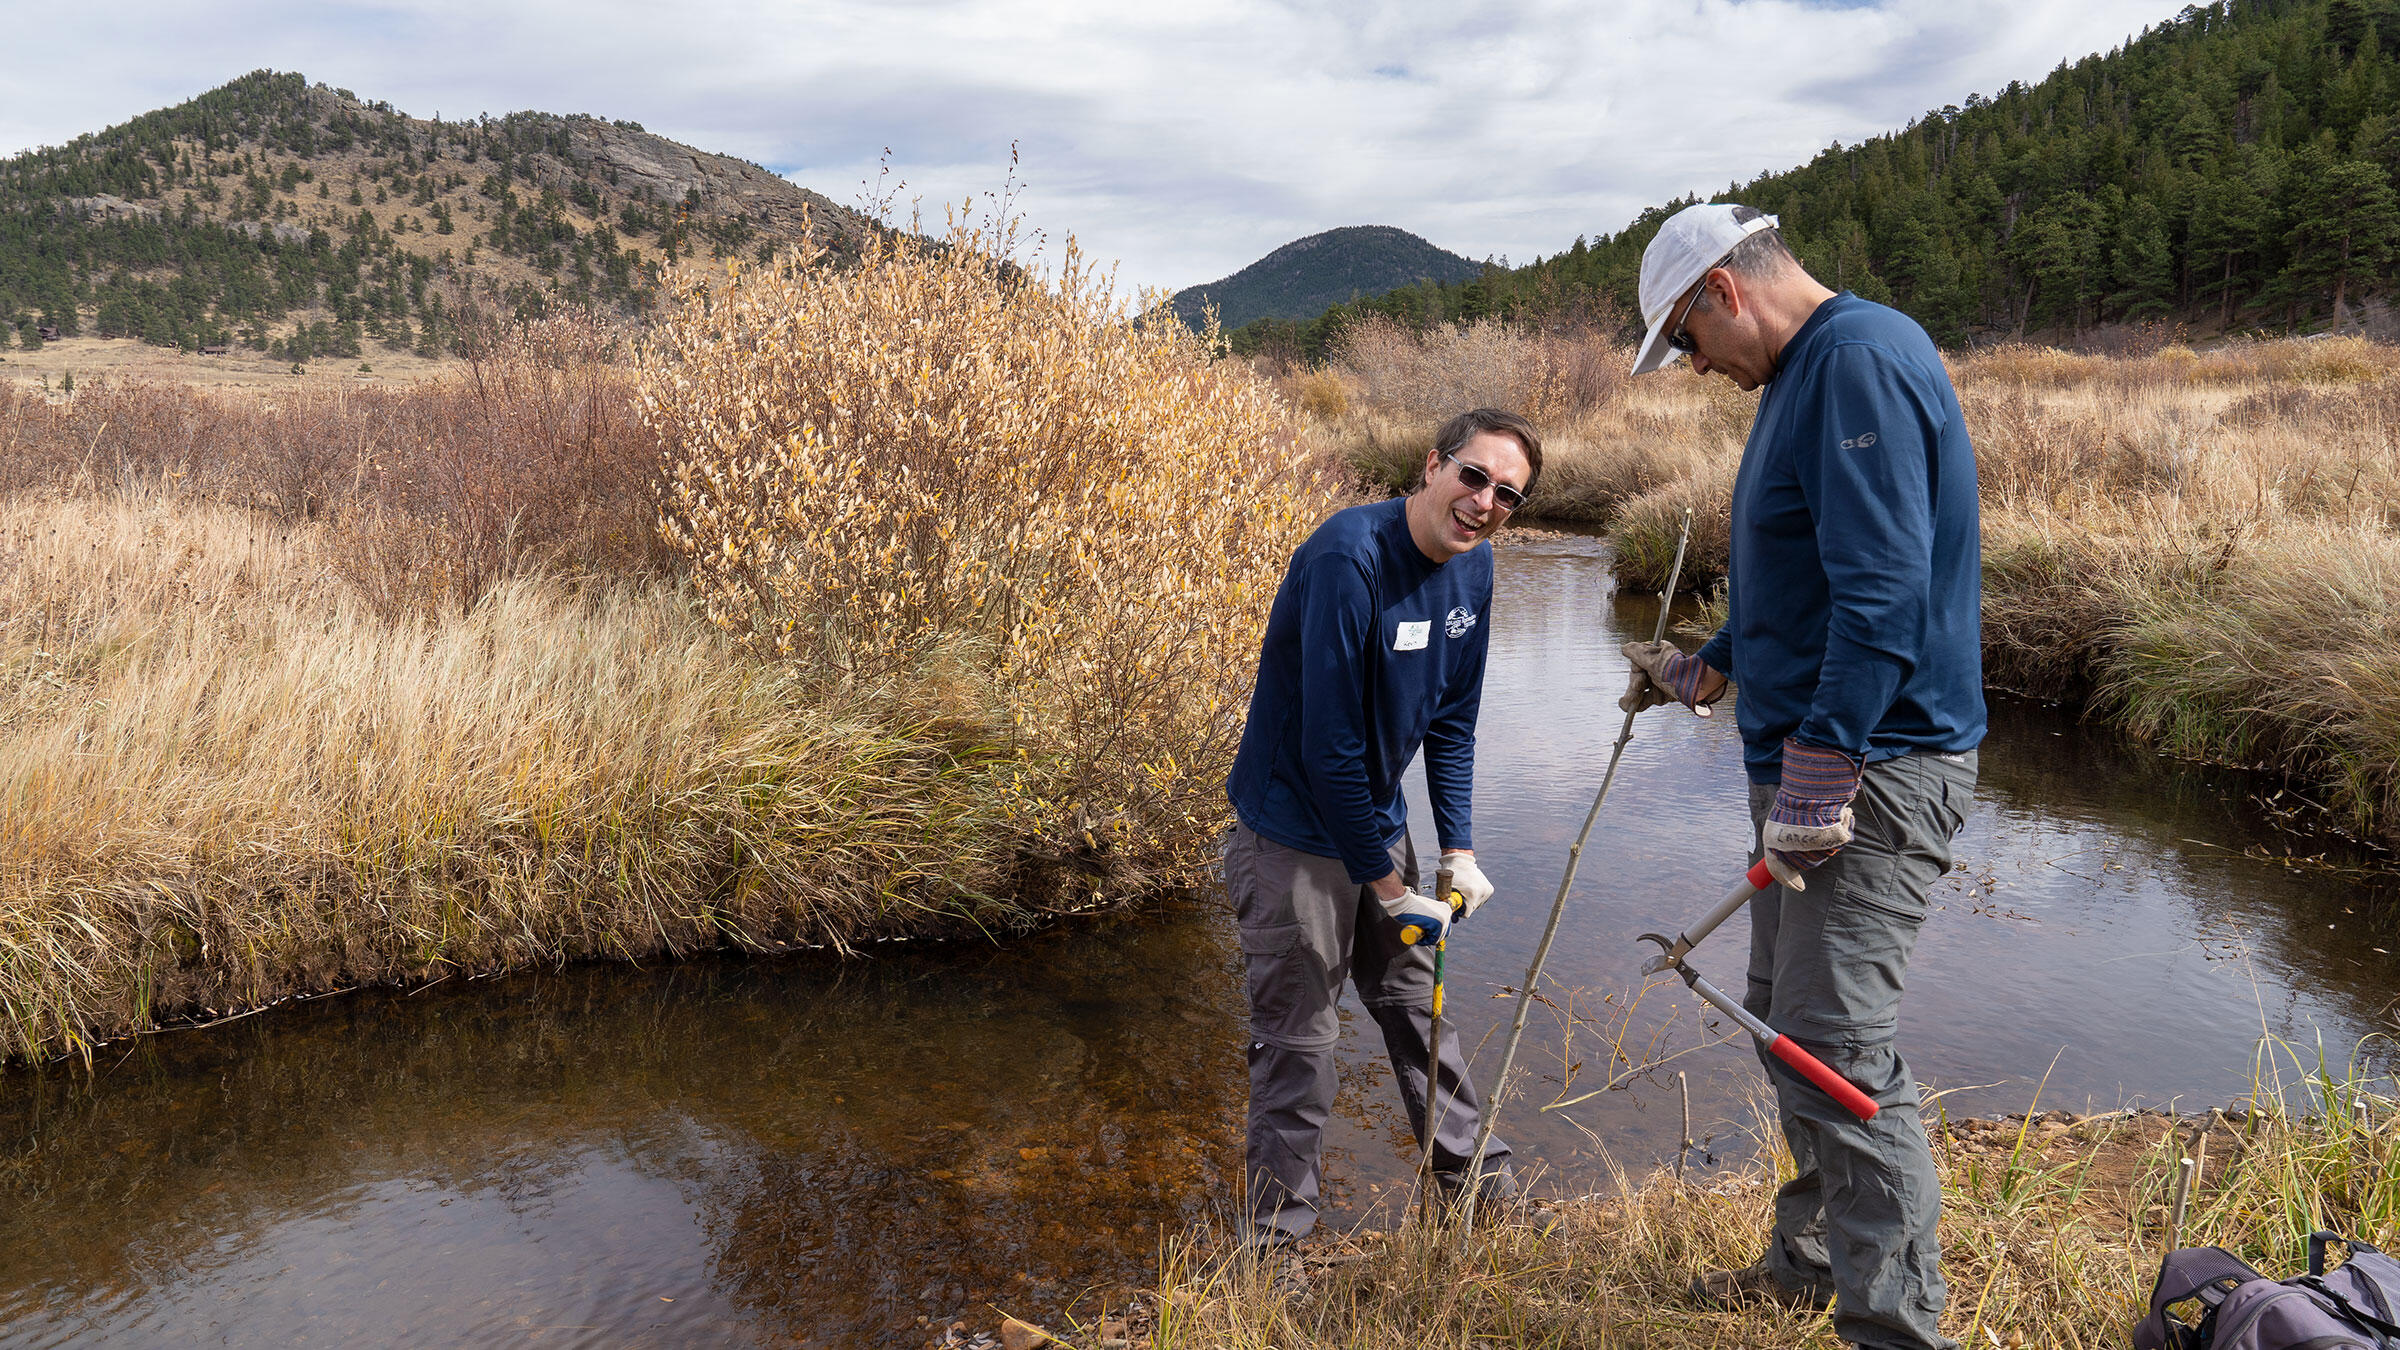 Volunteers plant willow saplings next to a montane stream.